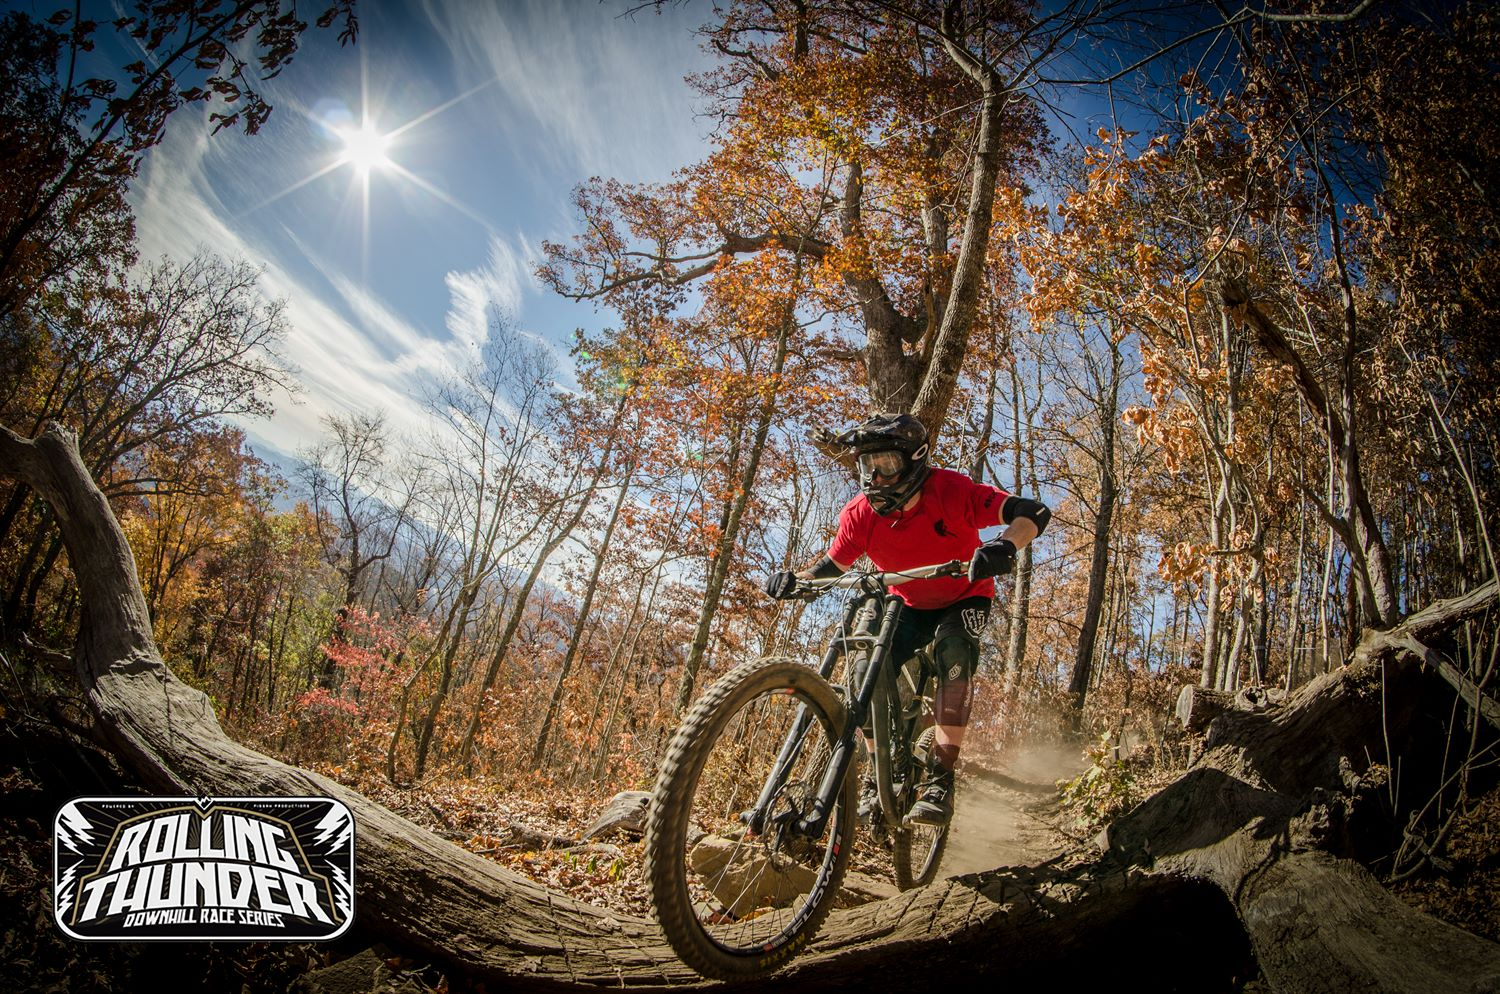 Rolling through dry, dusty conditions at Bailey Mountain Bike Park. PC IconMediaAsheville